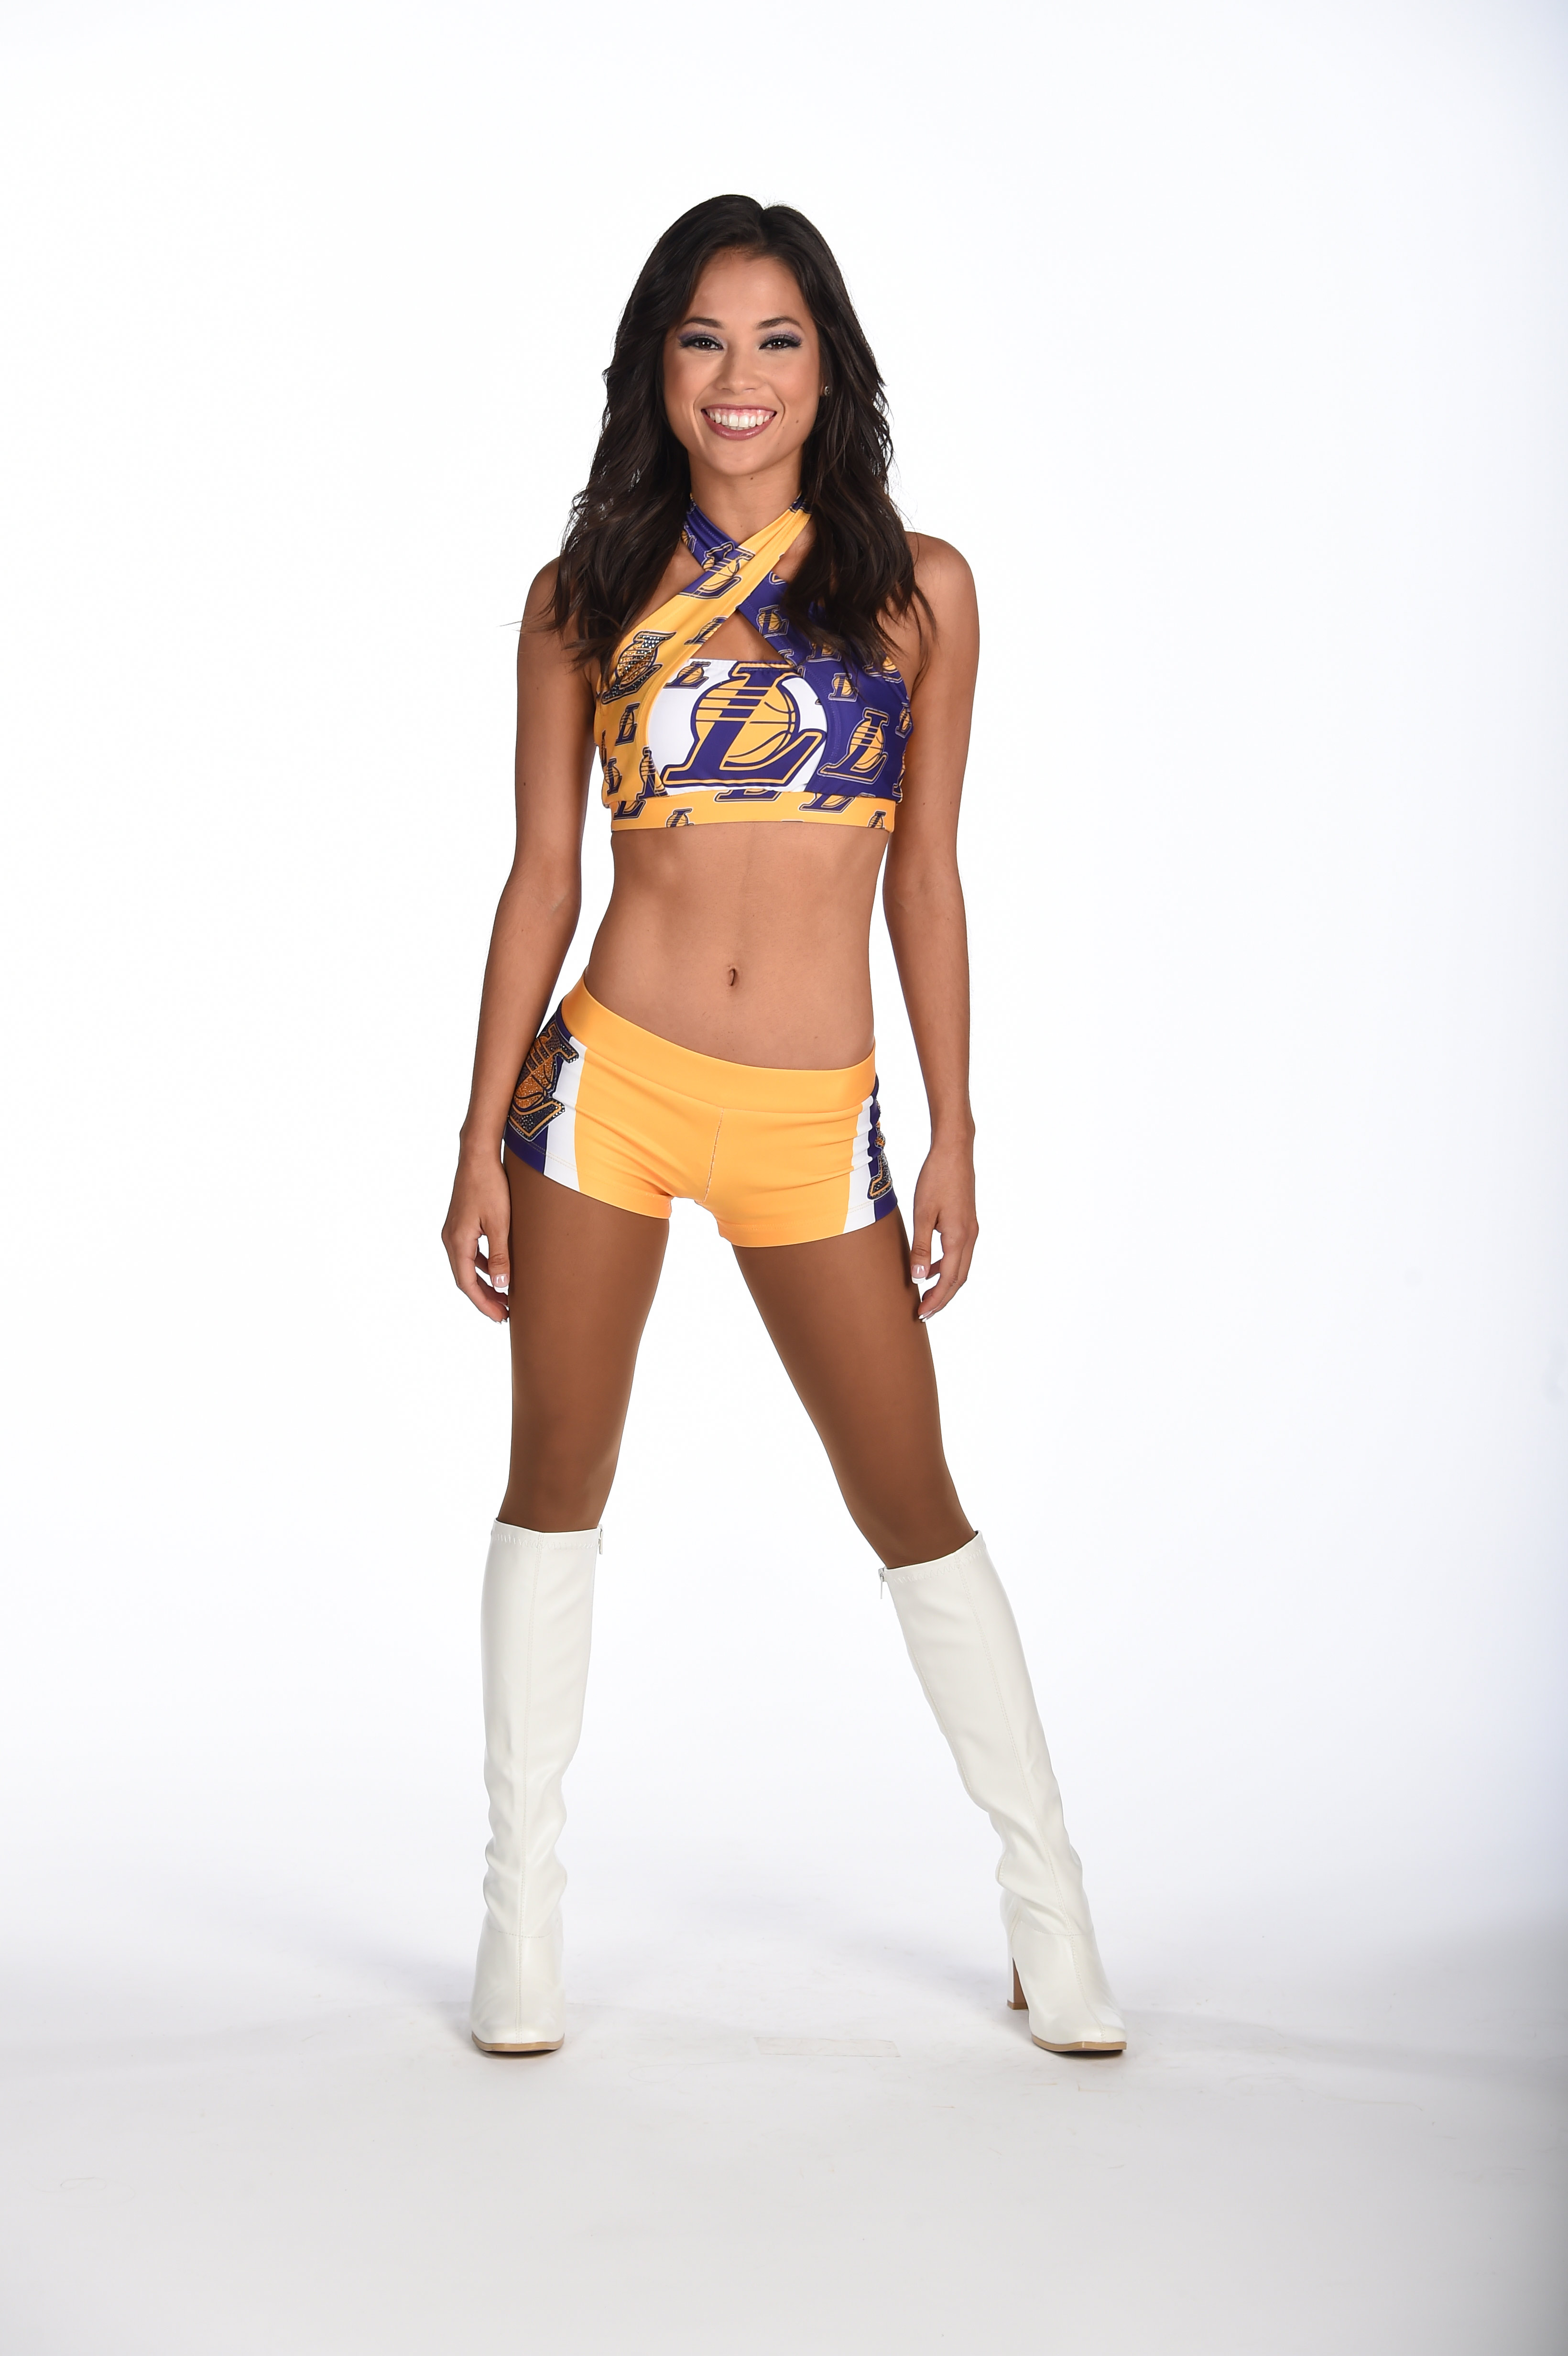 Laker Girls - Hayley